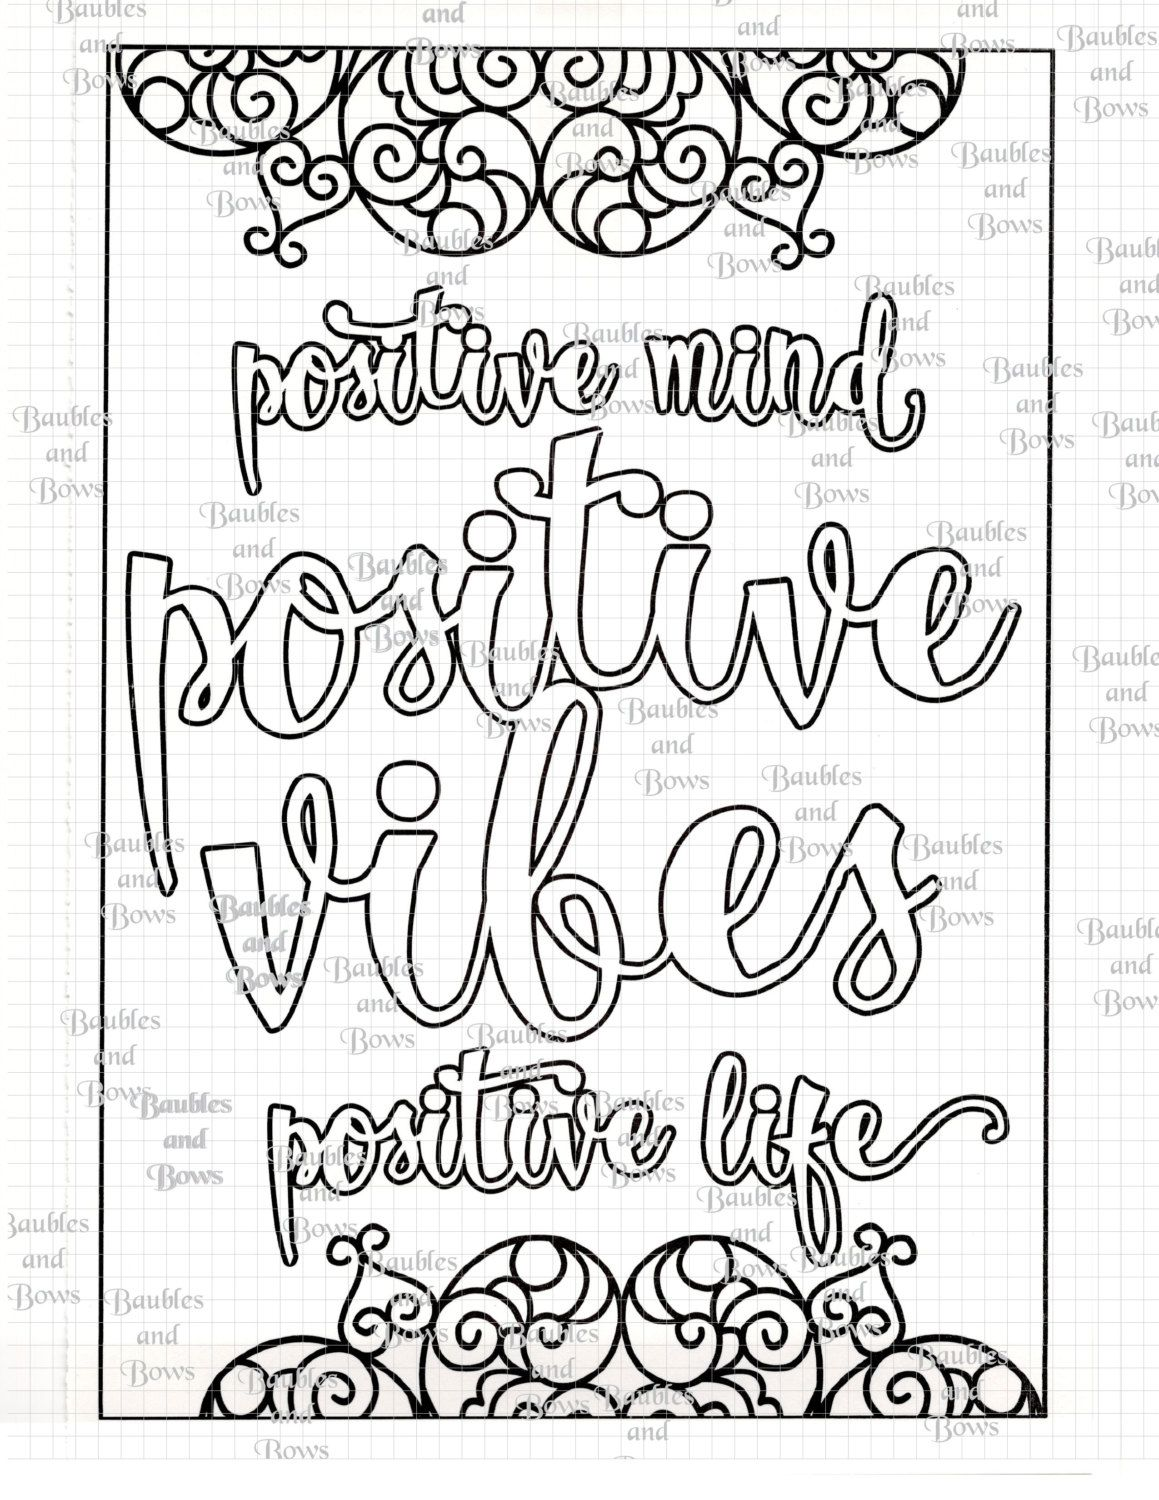 positive printable adult mandala coloring page digital by sewlacee in my feelinssss mandala. Black Bedroom Furniture Sets. Home Design Ideas